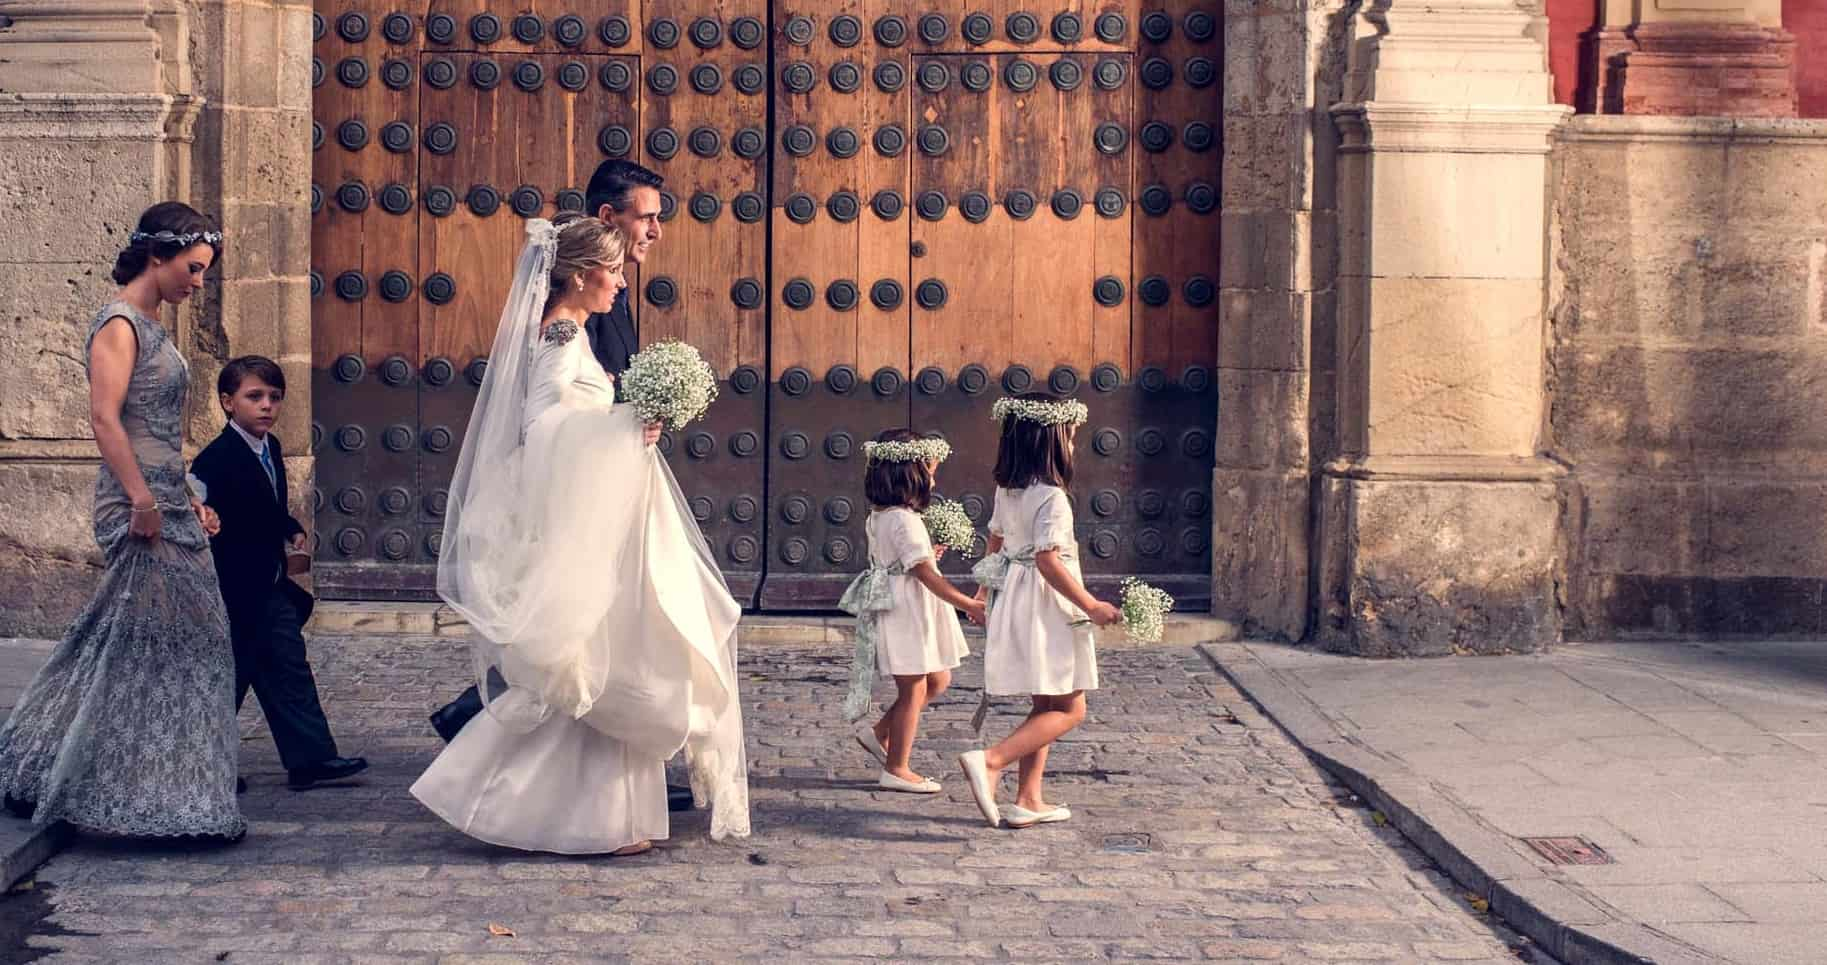 ROMANTIC WEDDINGS IN SEVILLE